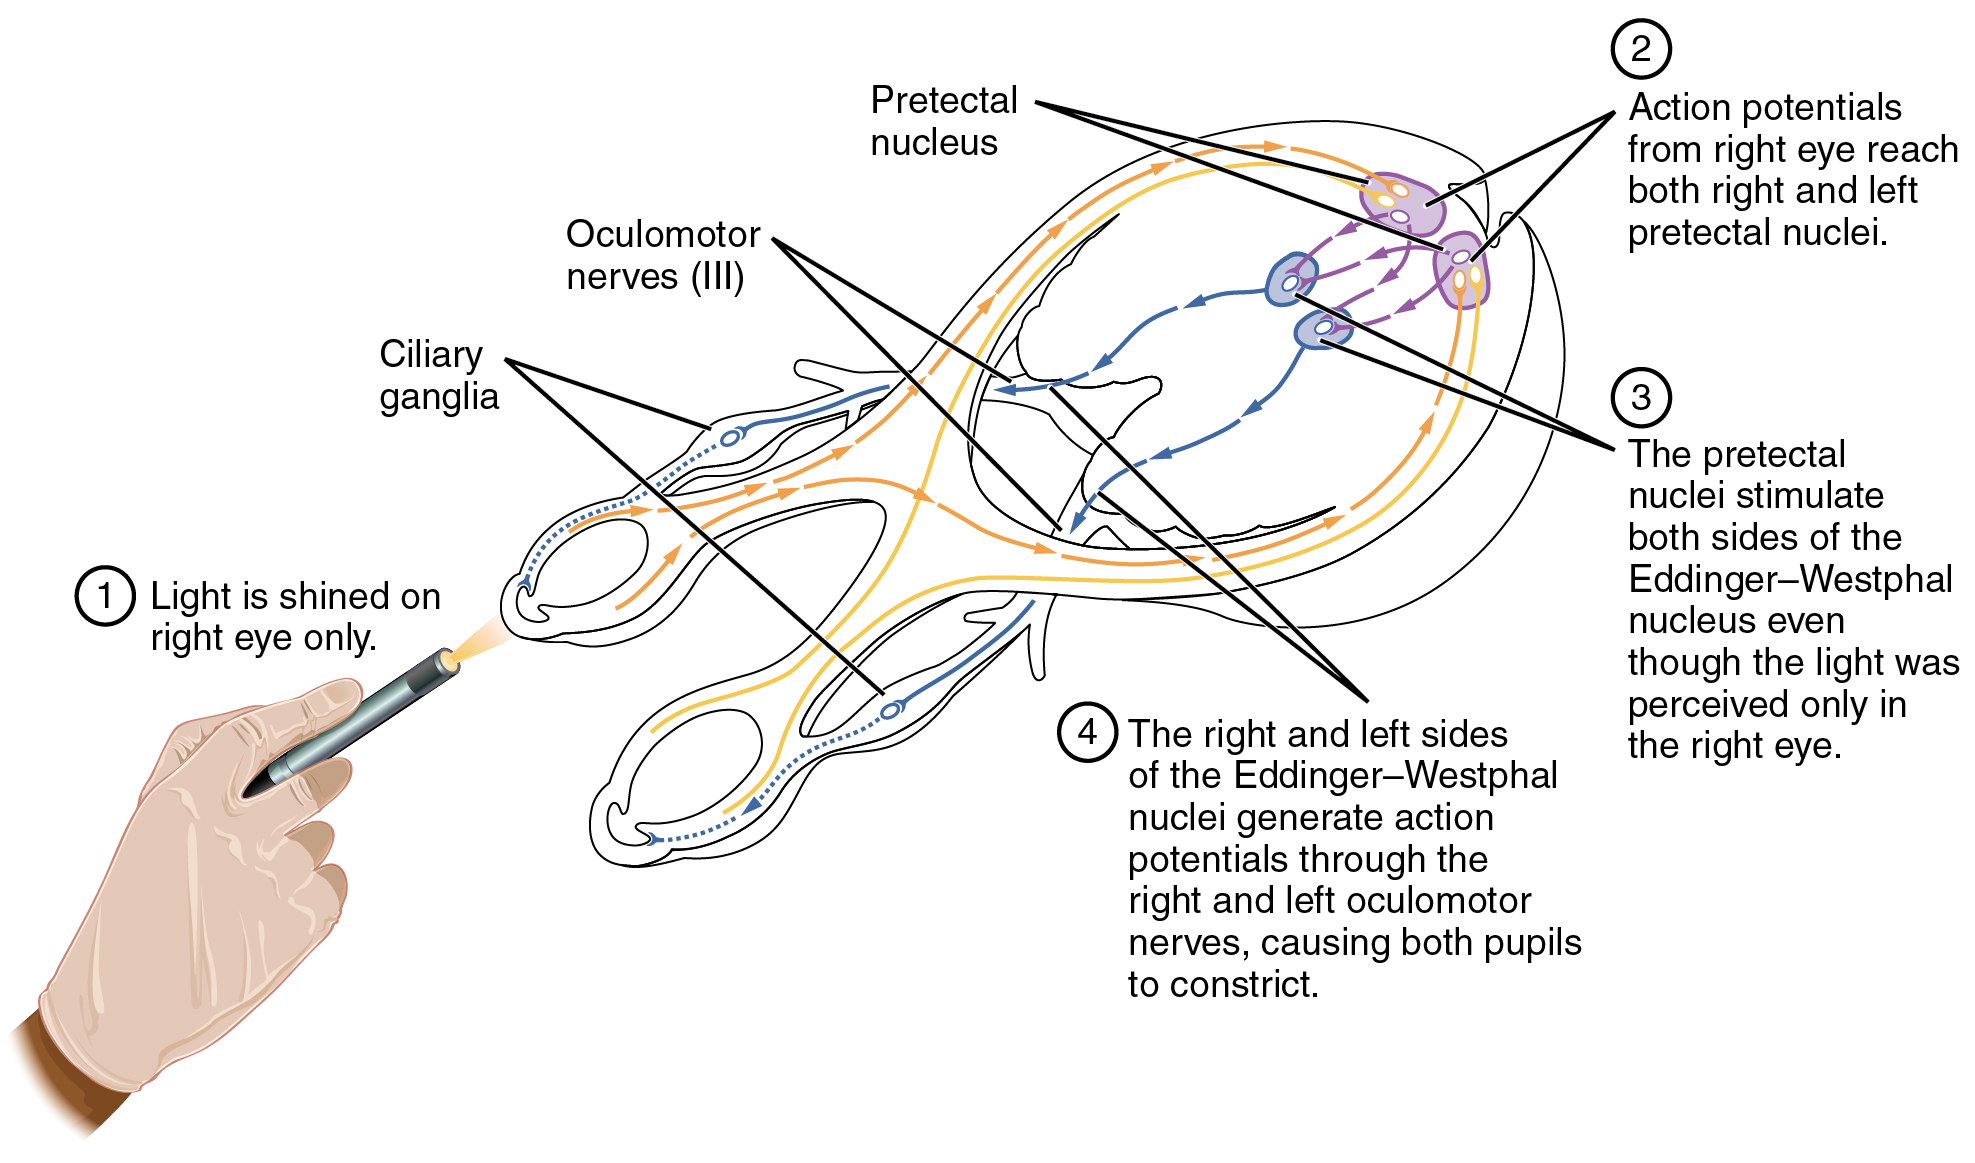 reflex arc diagram sacroiliac joint this shows the connections between different